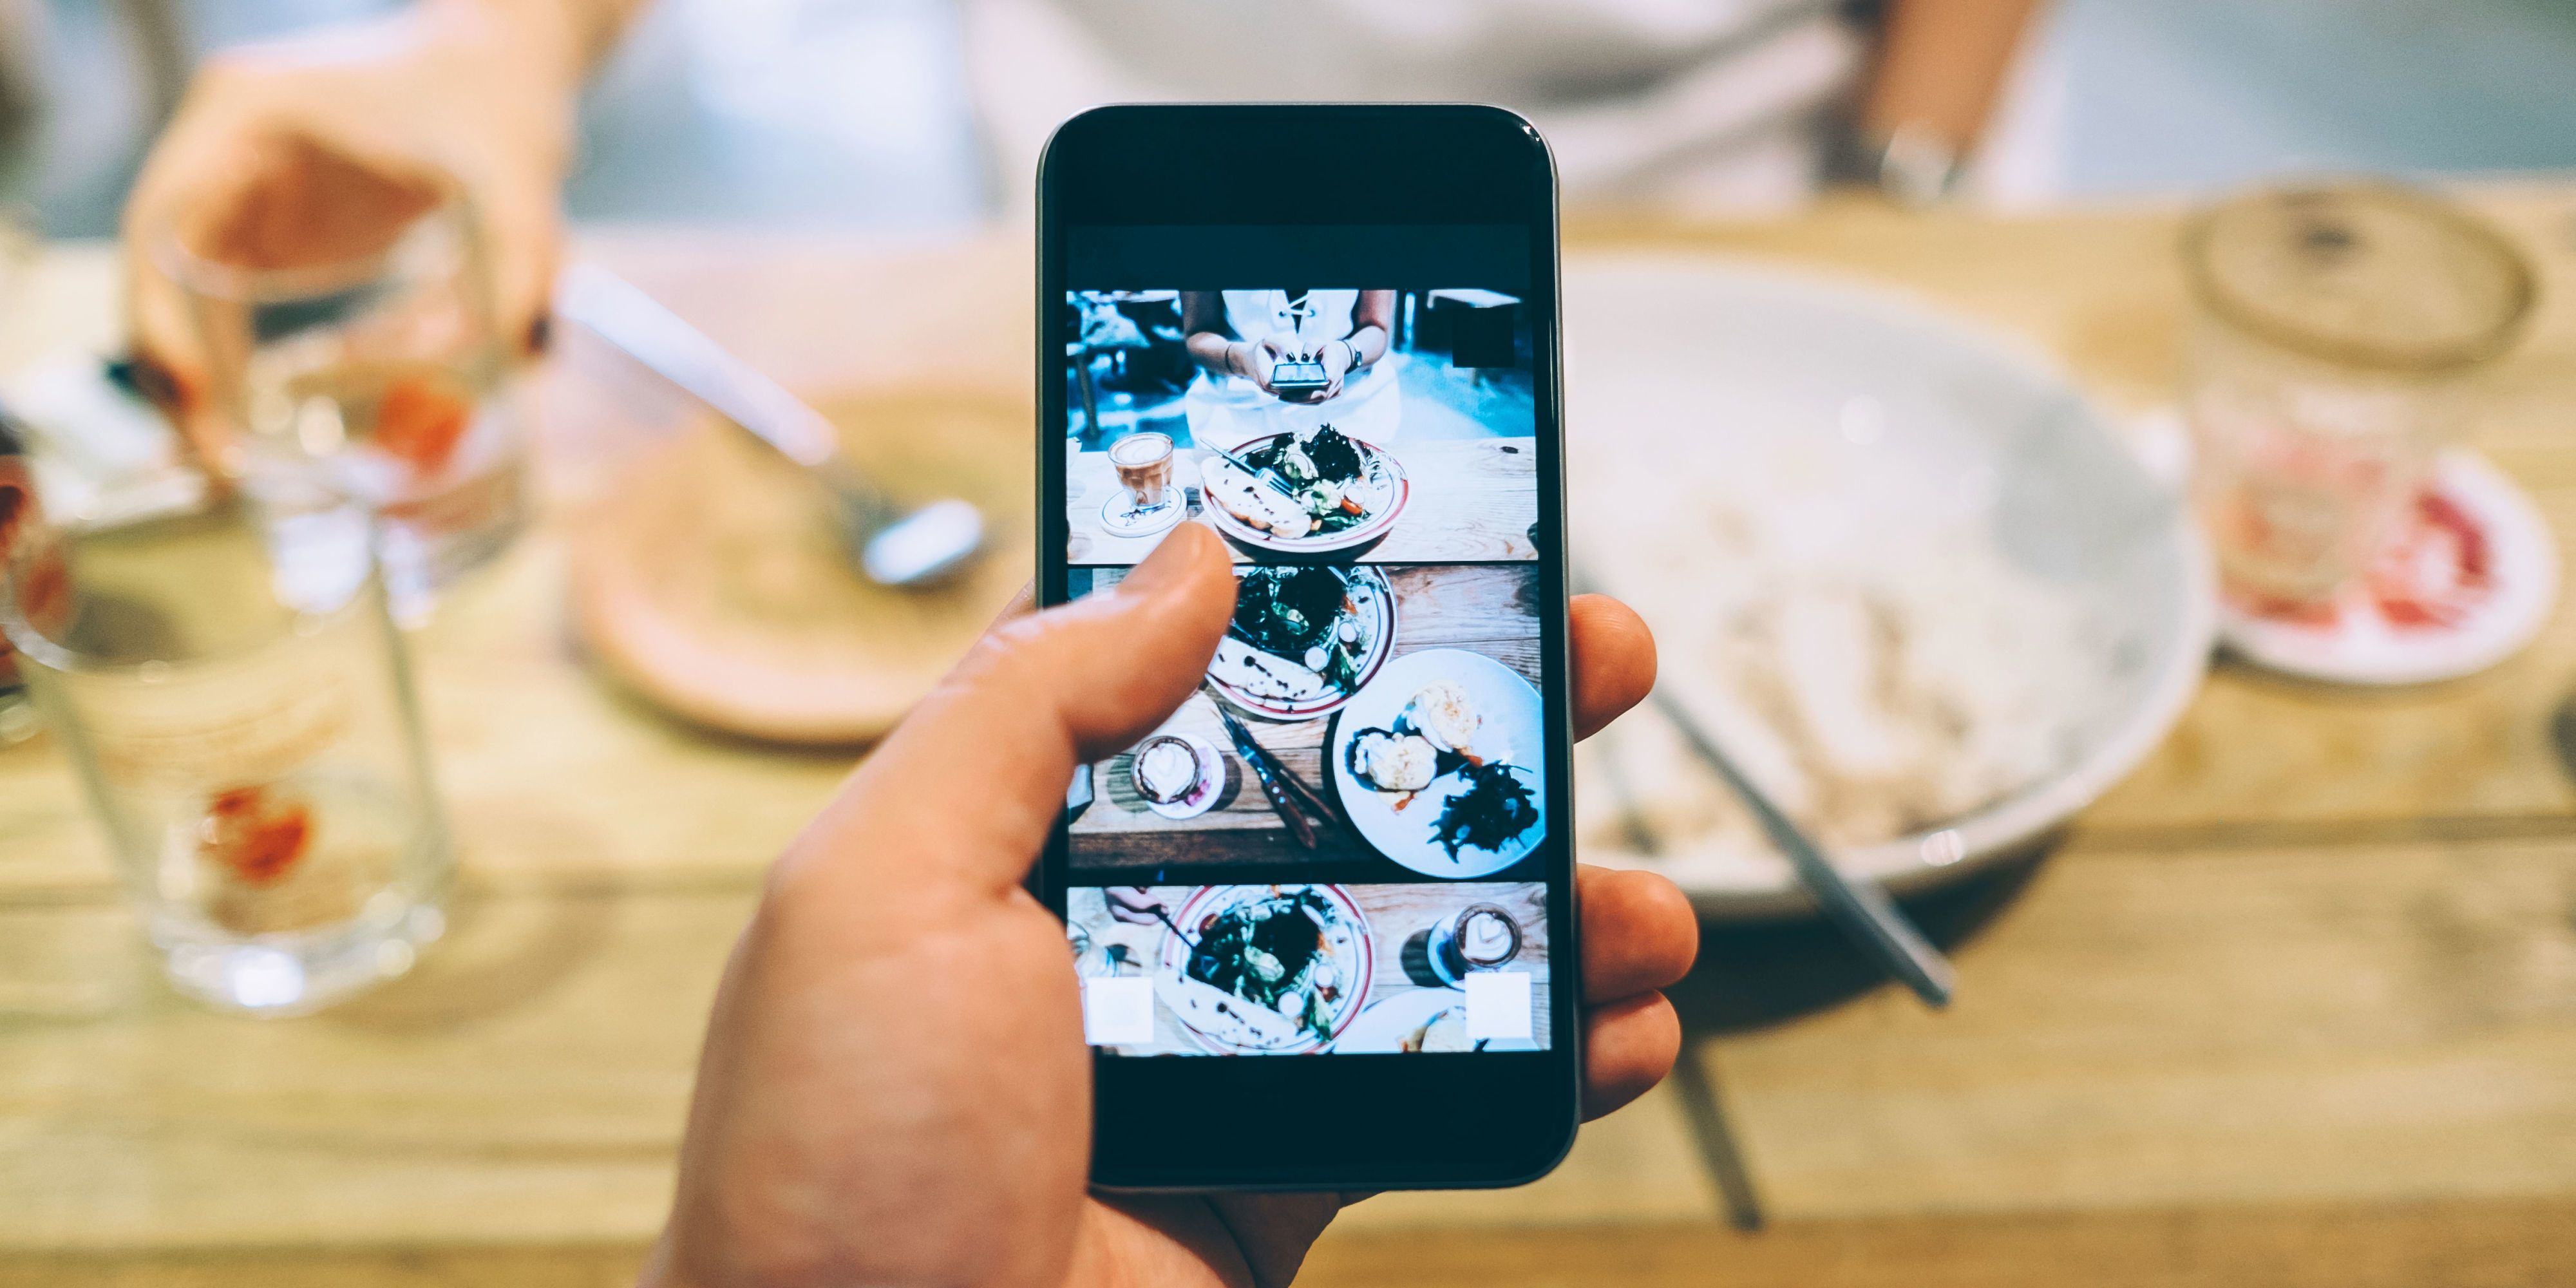 9 Essential Photo-Editing Apps You Need to Download